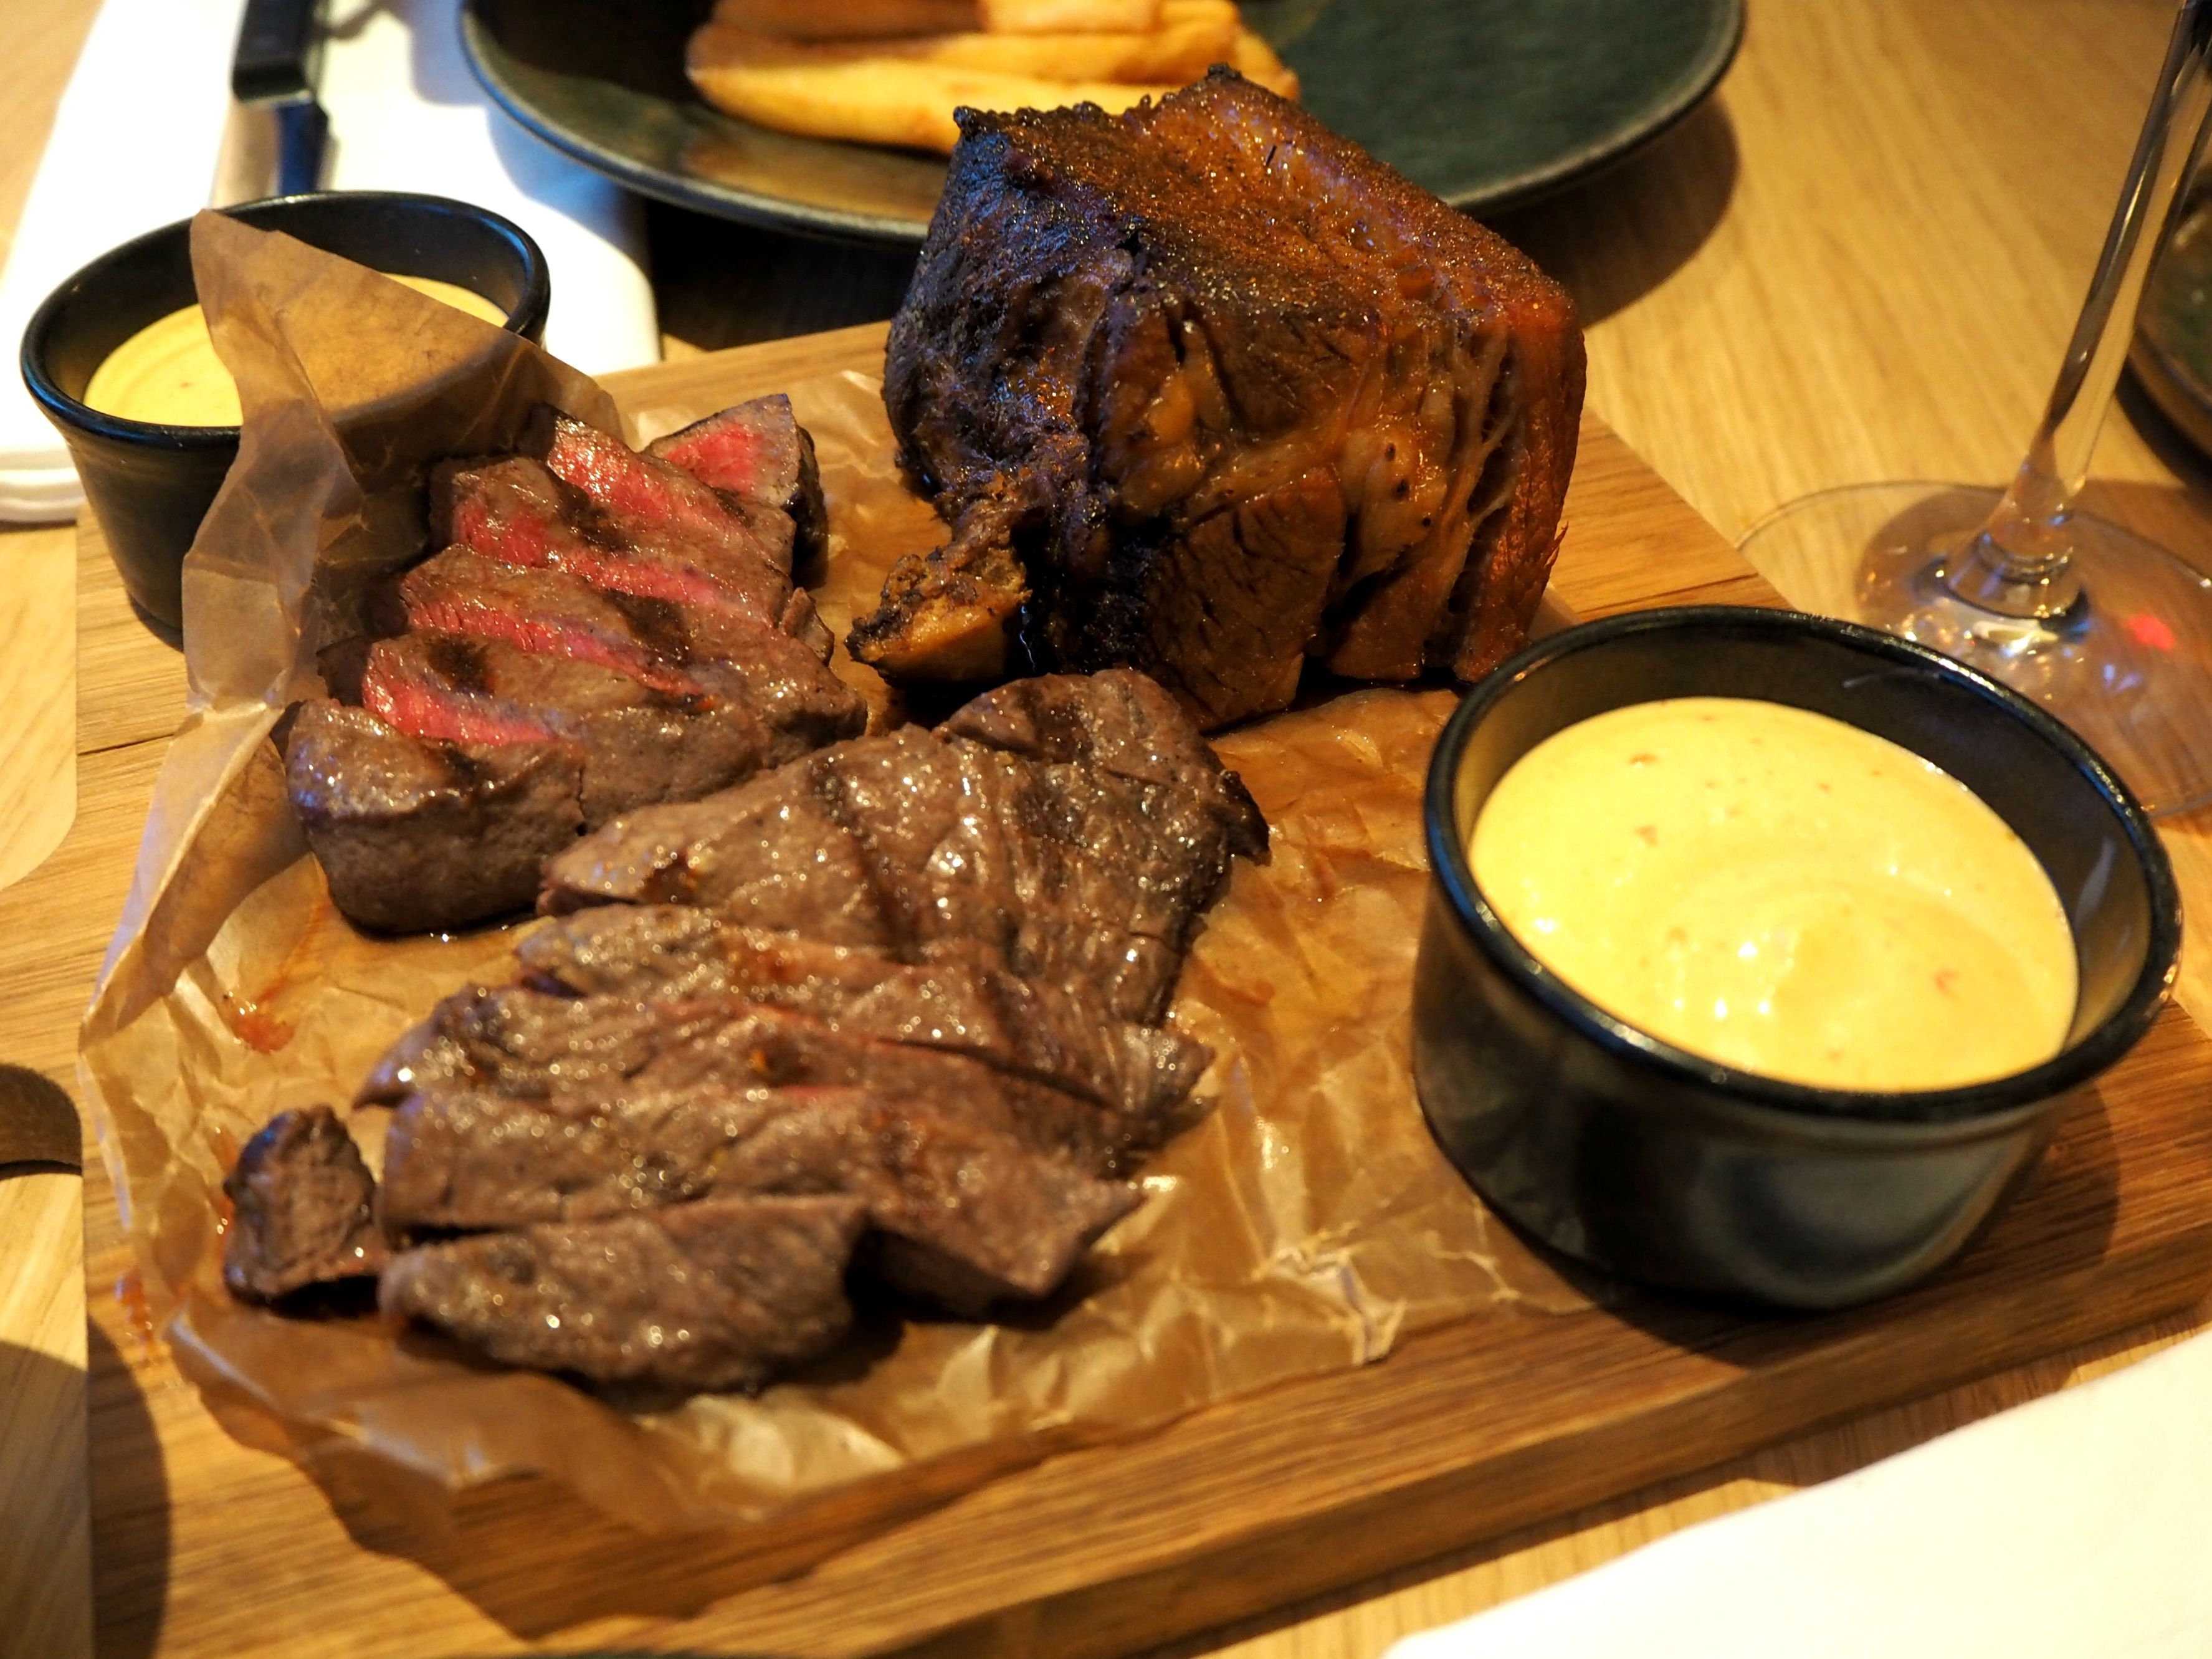 Hand-picked limousin sirloin and 12 hours brisket with smoked chili mayonnaise at FireLake Stavanger